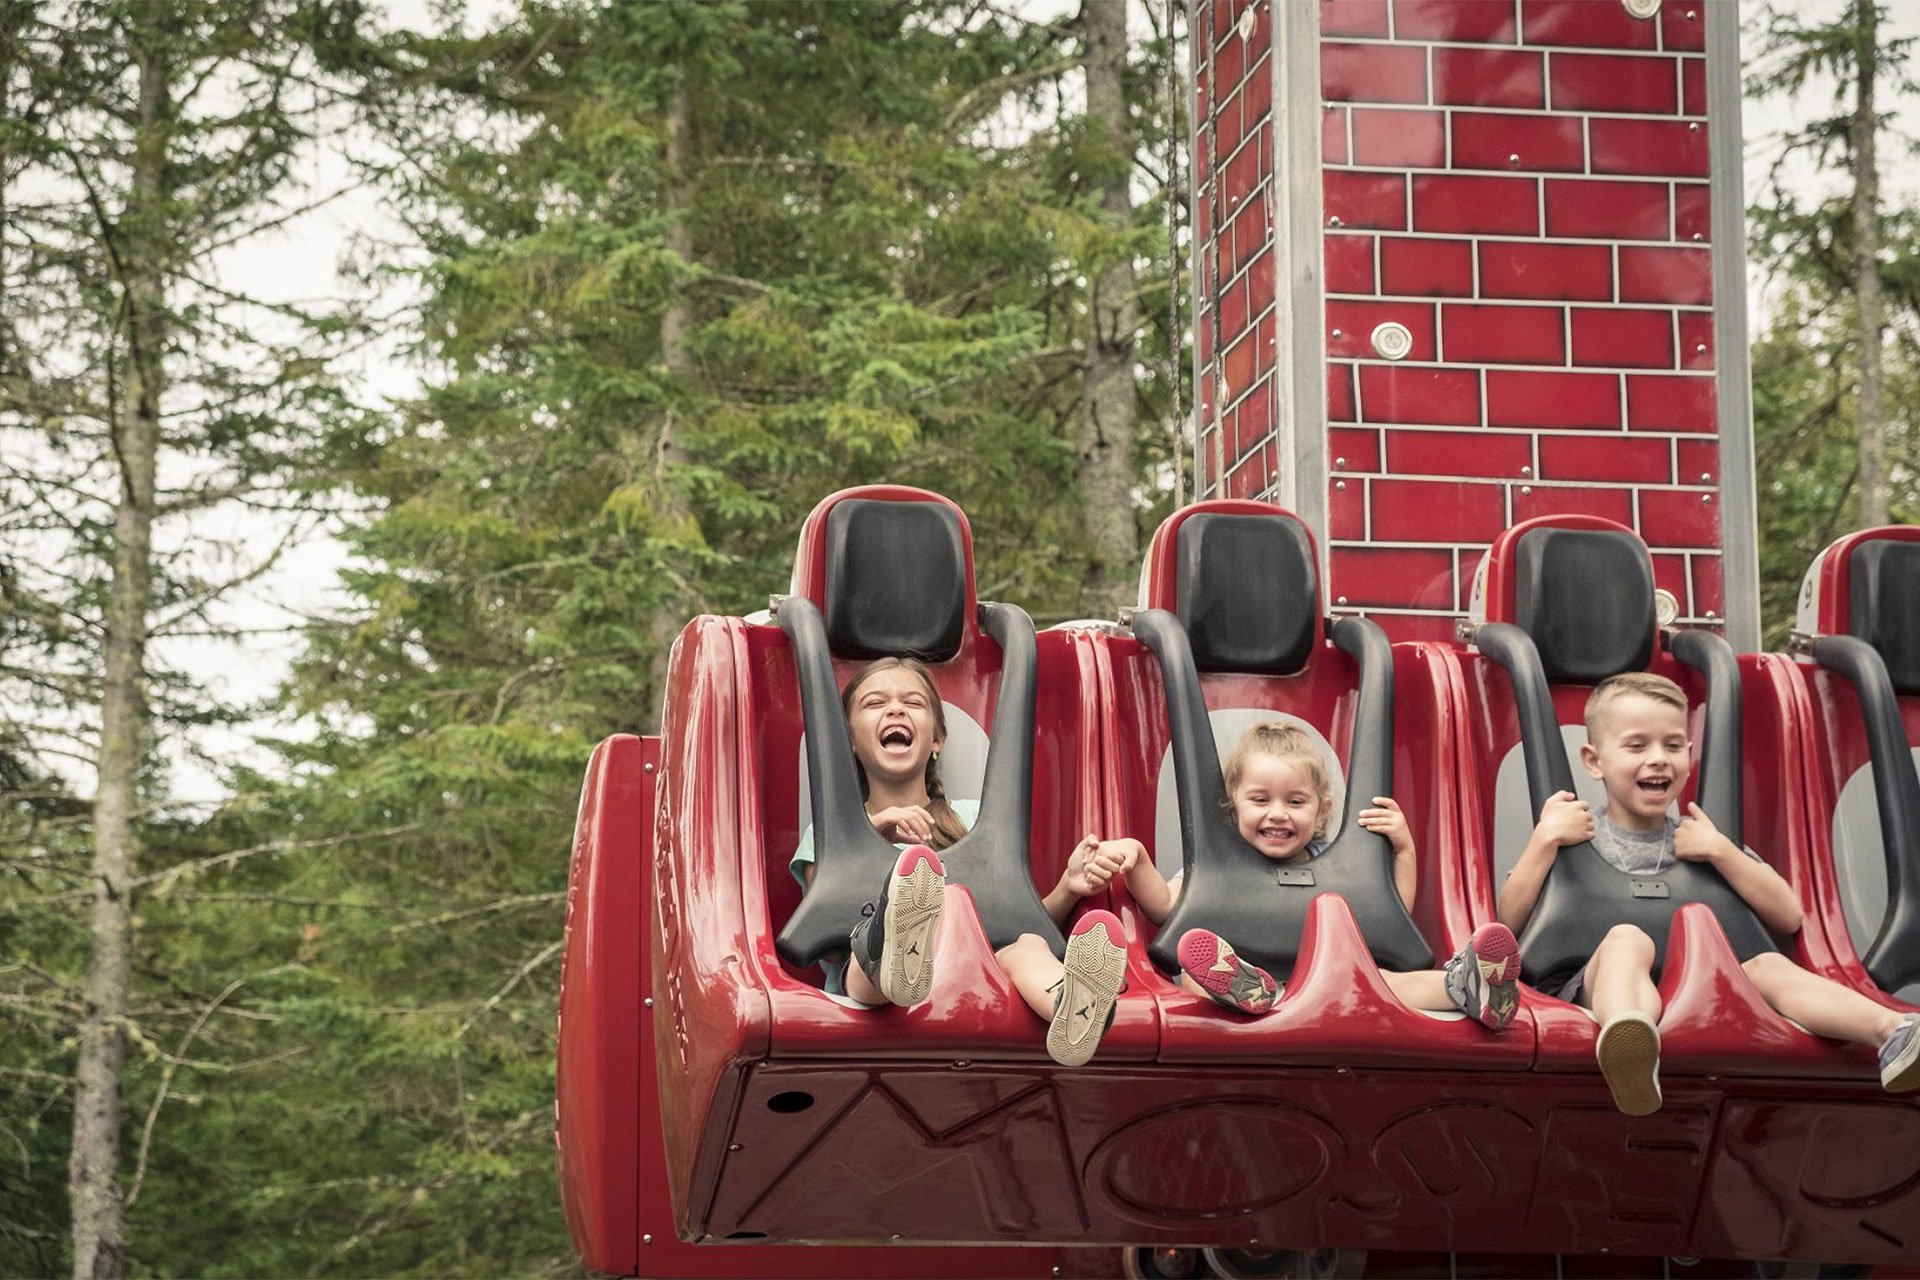 Chimney Drop Ride at Santa's Village in New Hampshire; Courtesy of Santa's Village